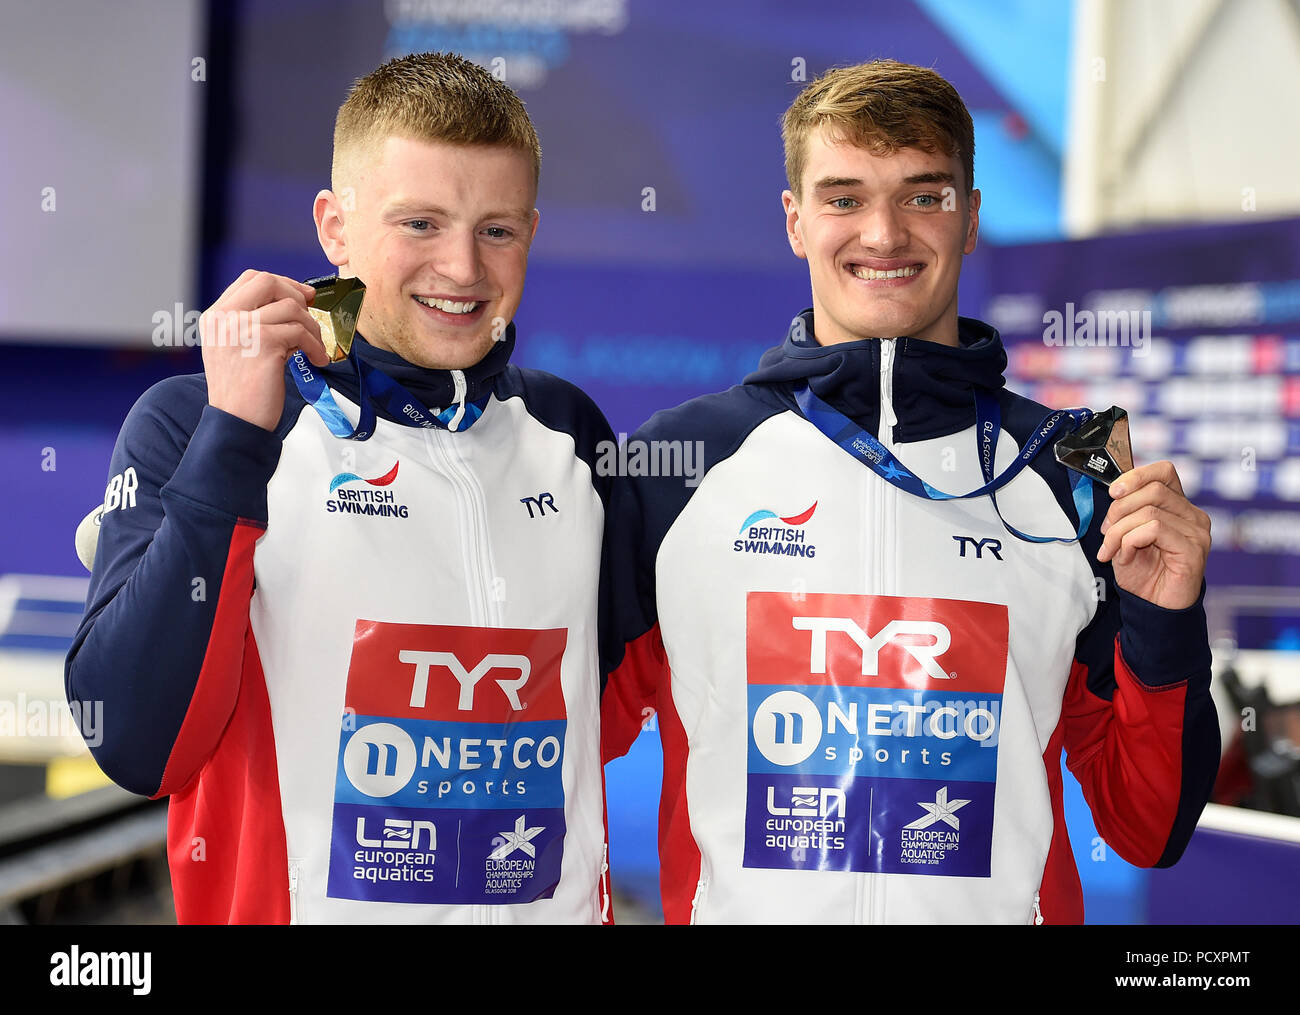 9a7468a031b Great Britain s Adam Peaty (left) with his gold medal alongside compariot  James Wilby who won silver after the Men s 100m Breaststroke Final during  day ...